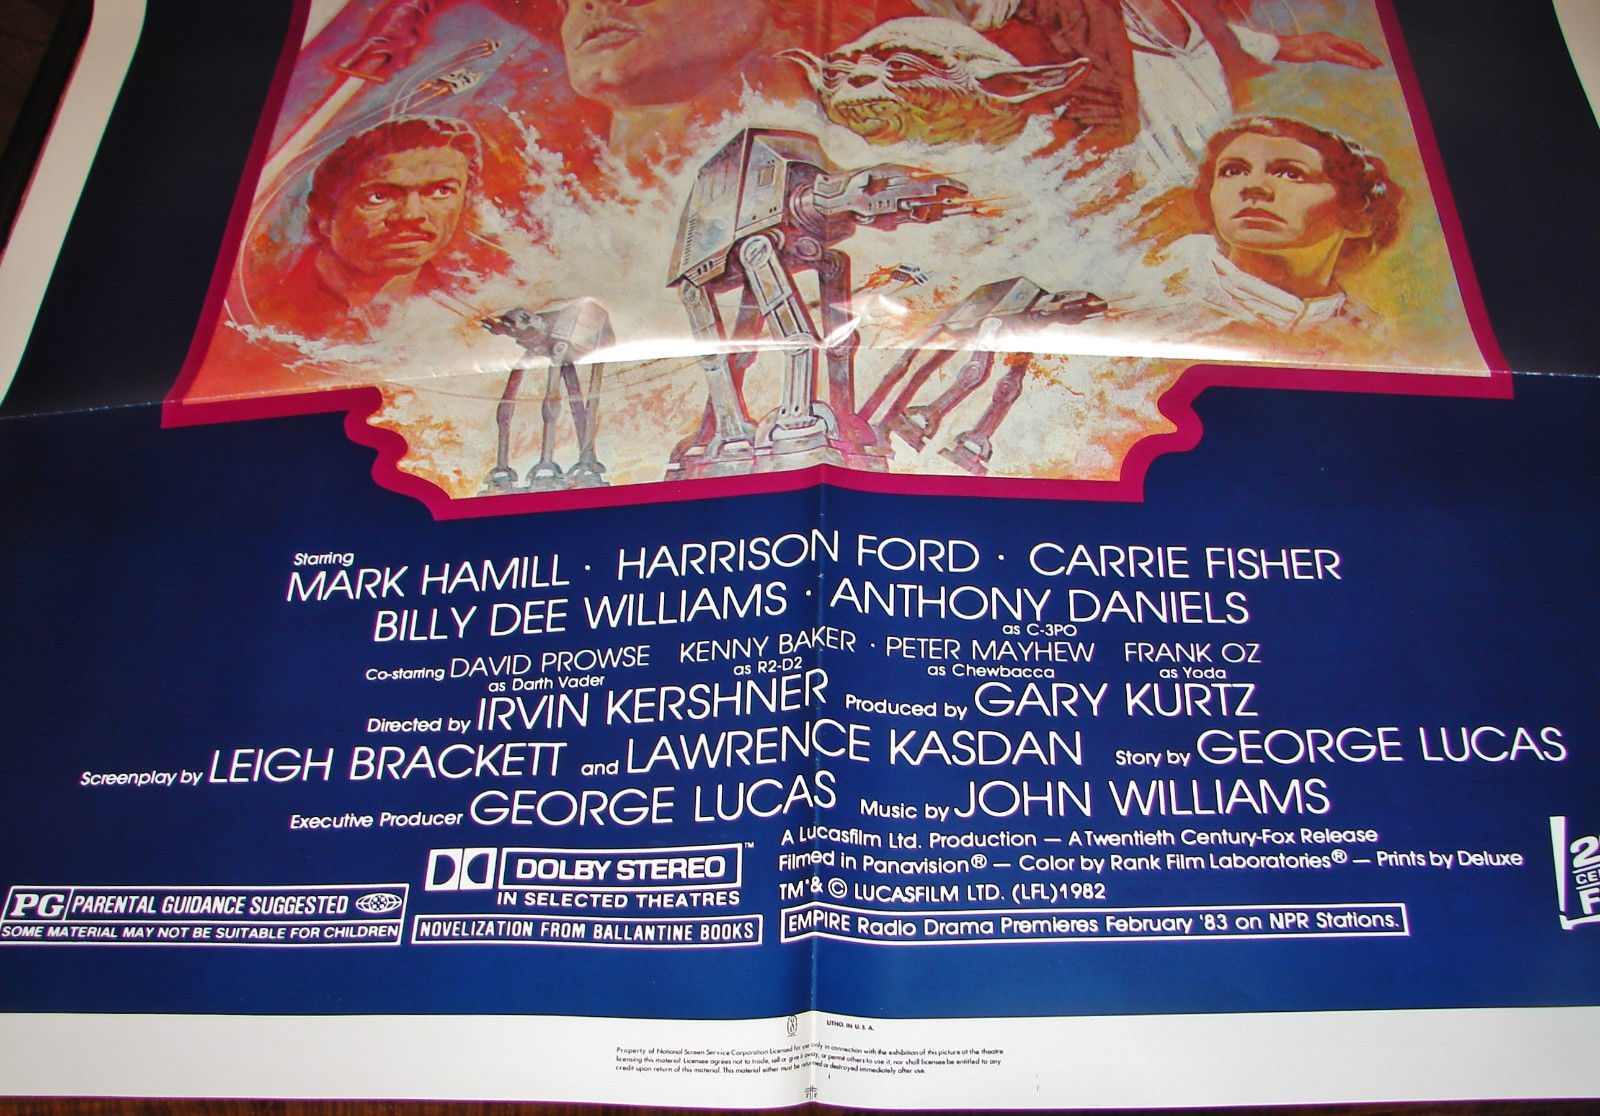 STAR WARS MOVIE POSTER THE EMPIRE STRIKES BACK R820180 27x41 Orig 1982 ReRelease